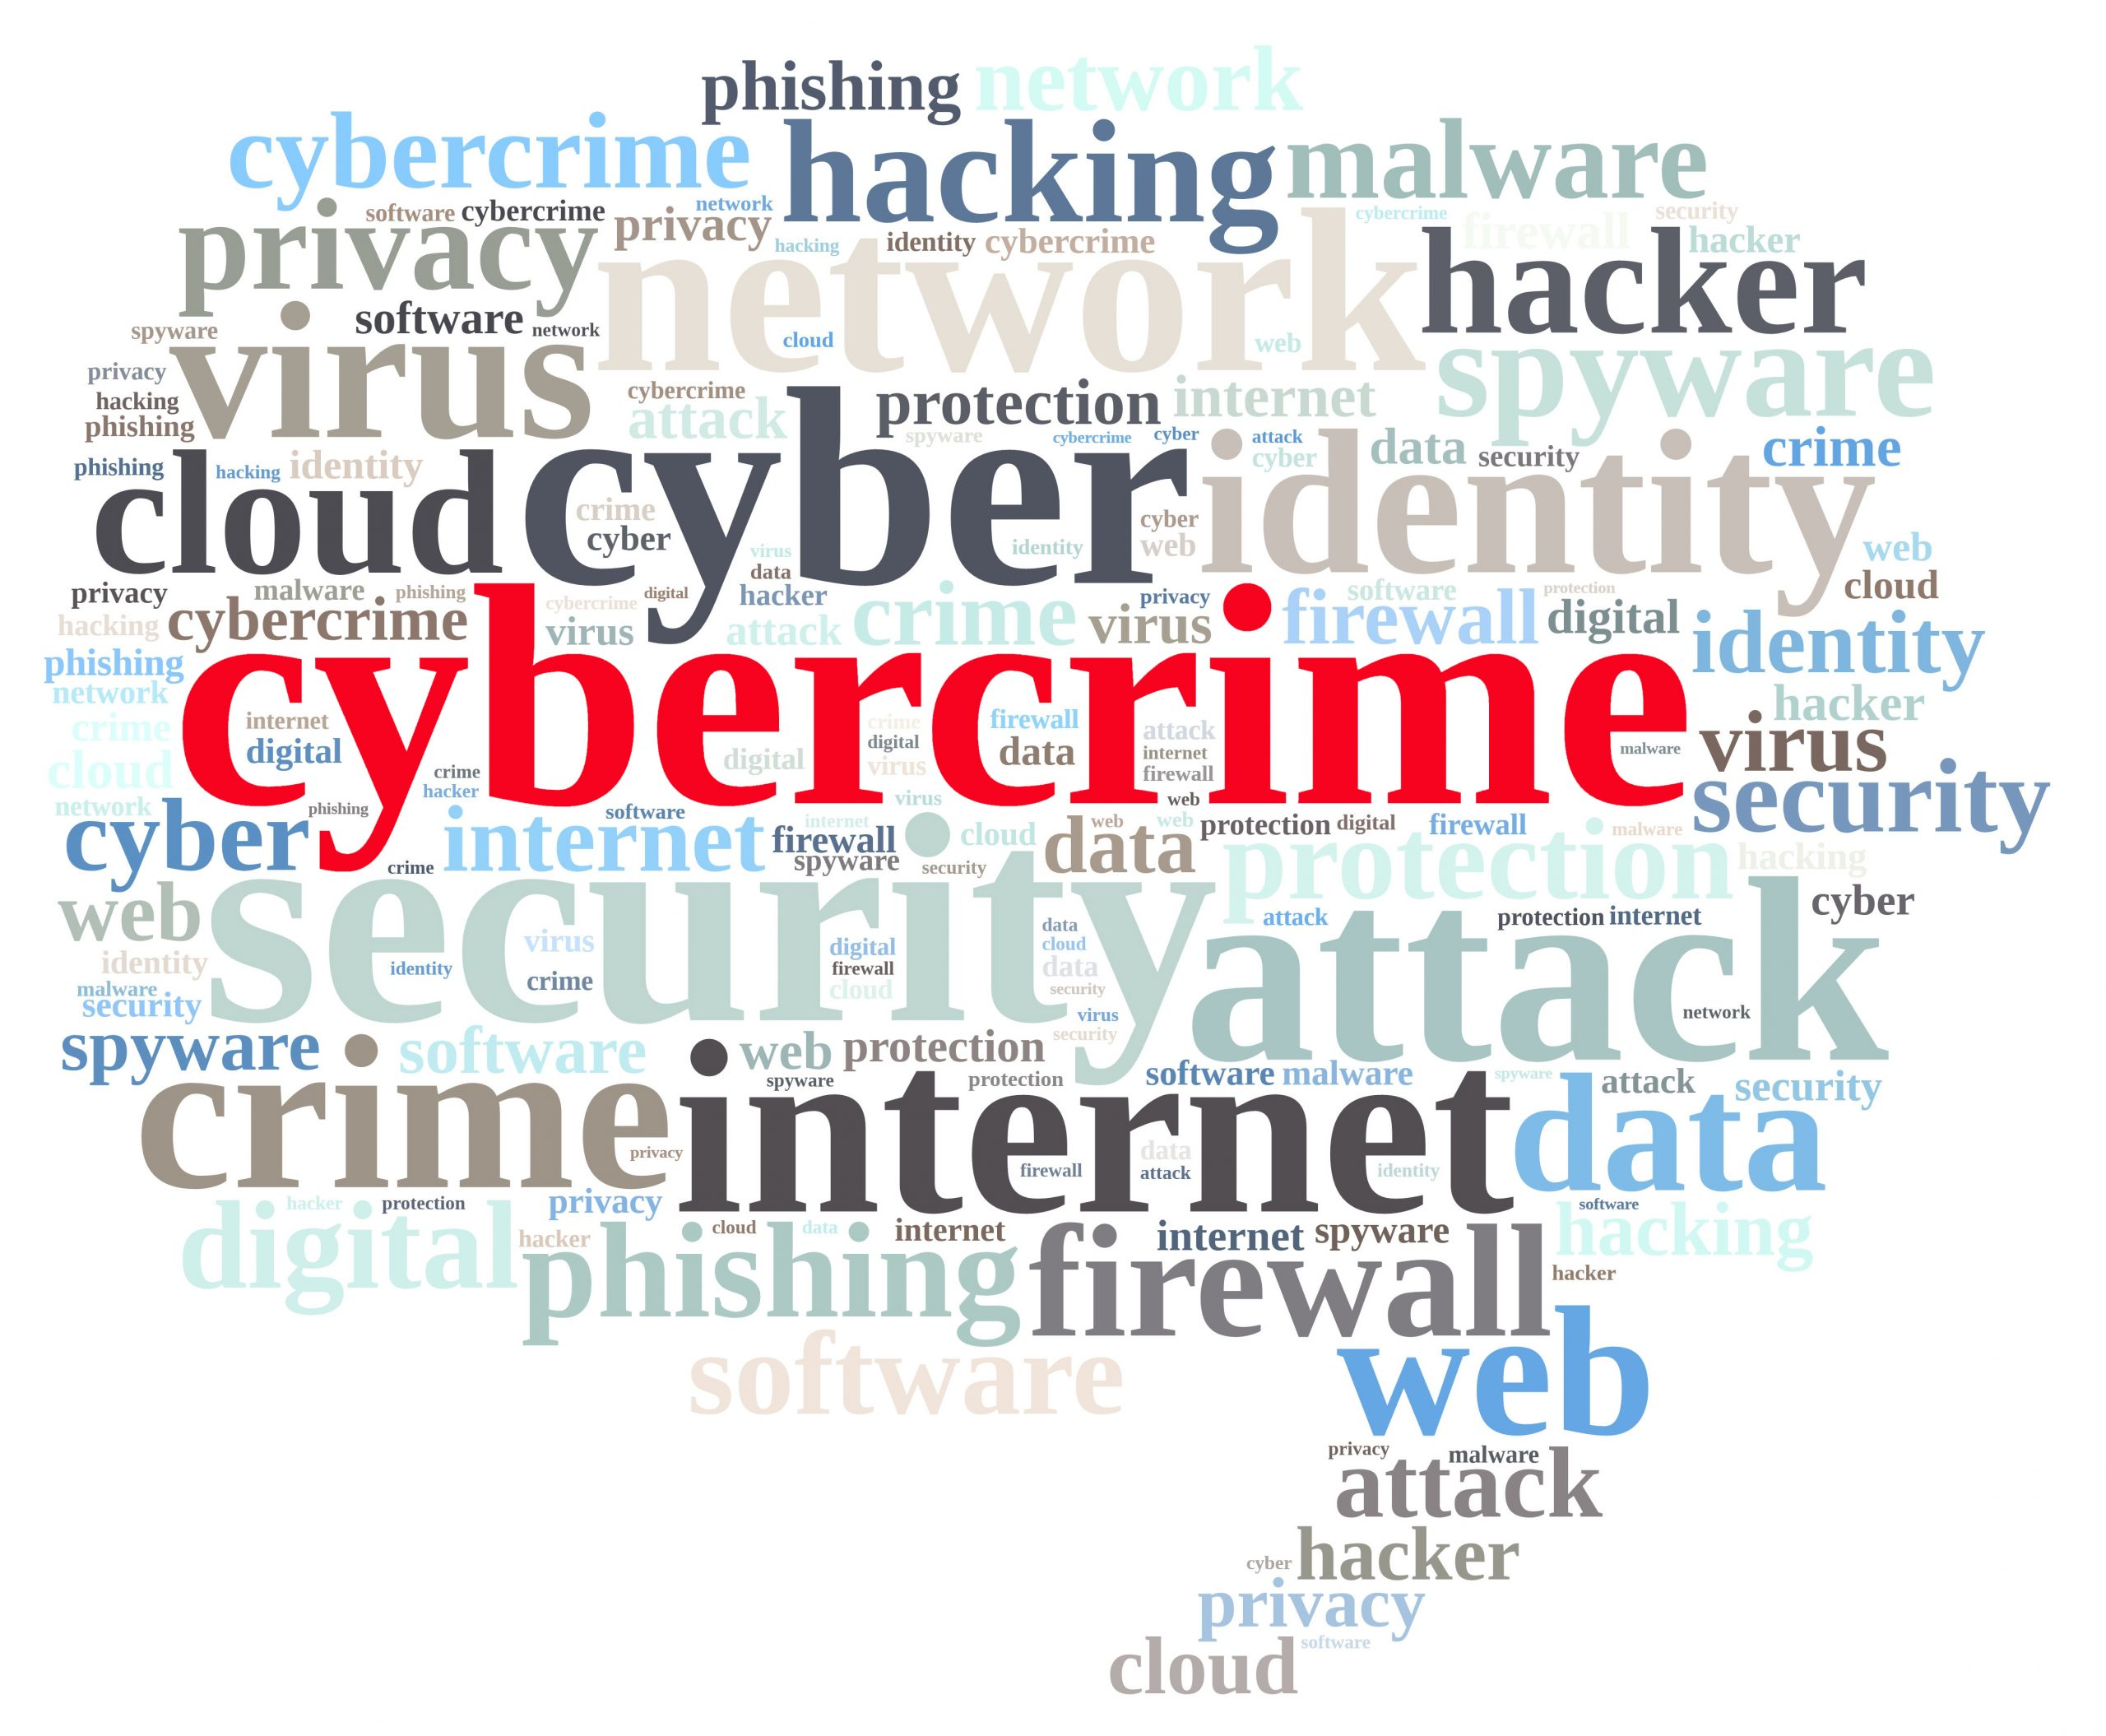 Brexit will make the UK more vulnerable to cybercrime